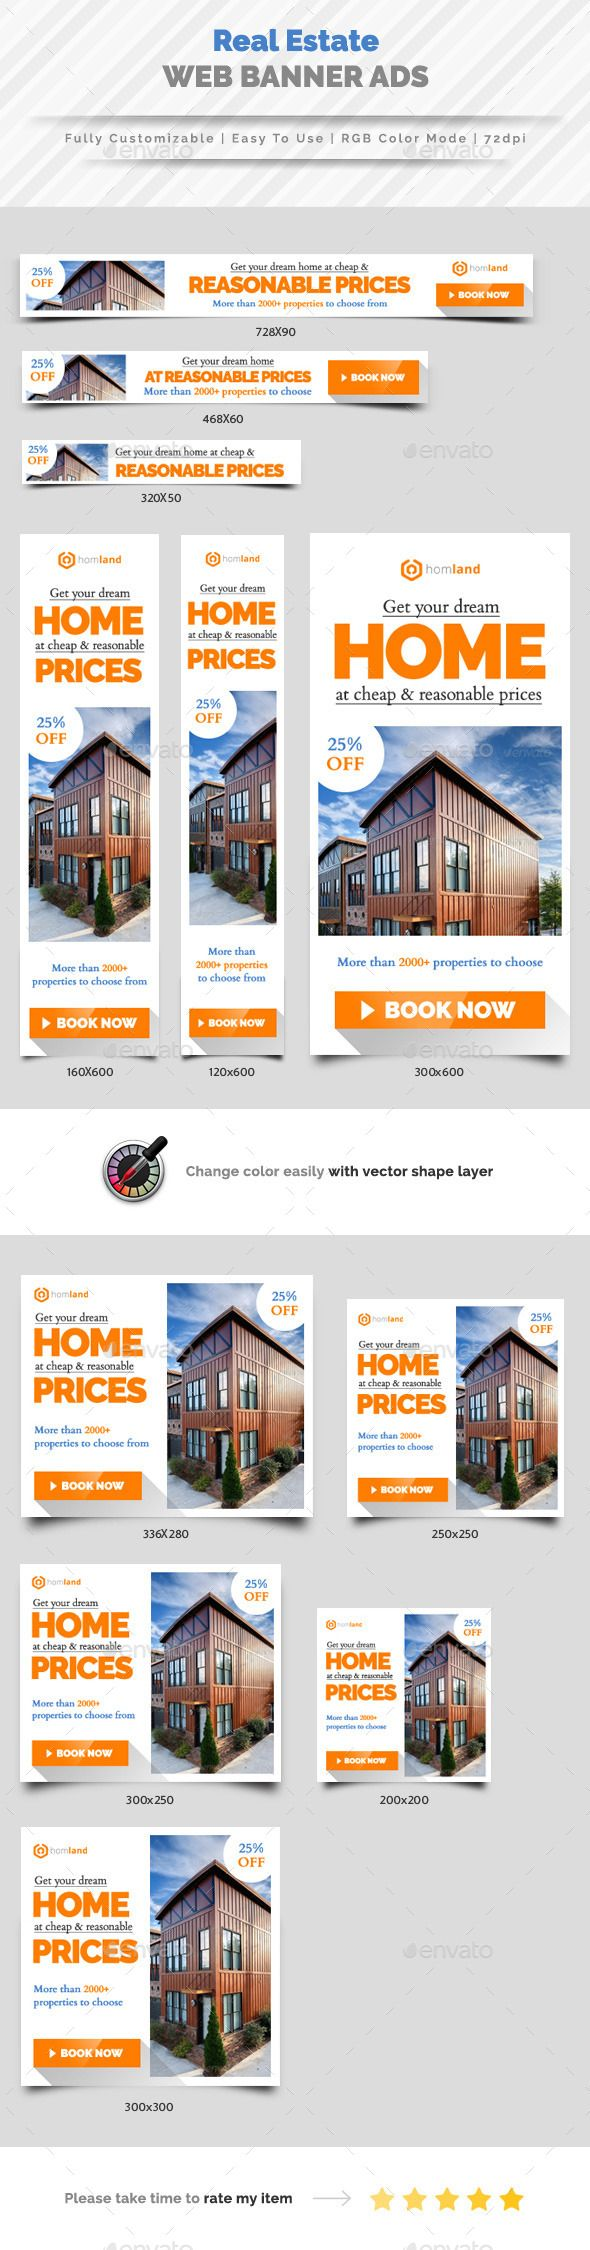 best ideas about real estate agency best real real estate agency web banner ads